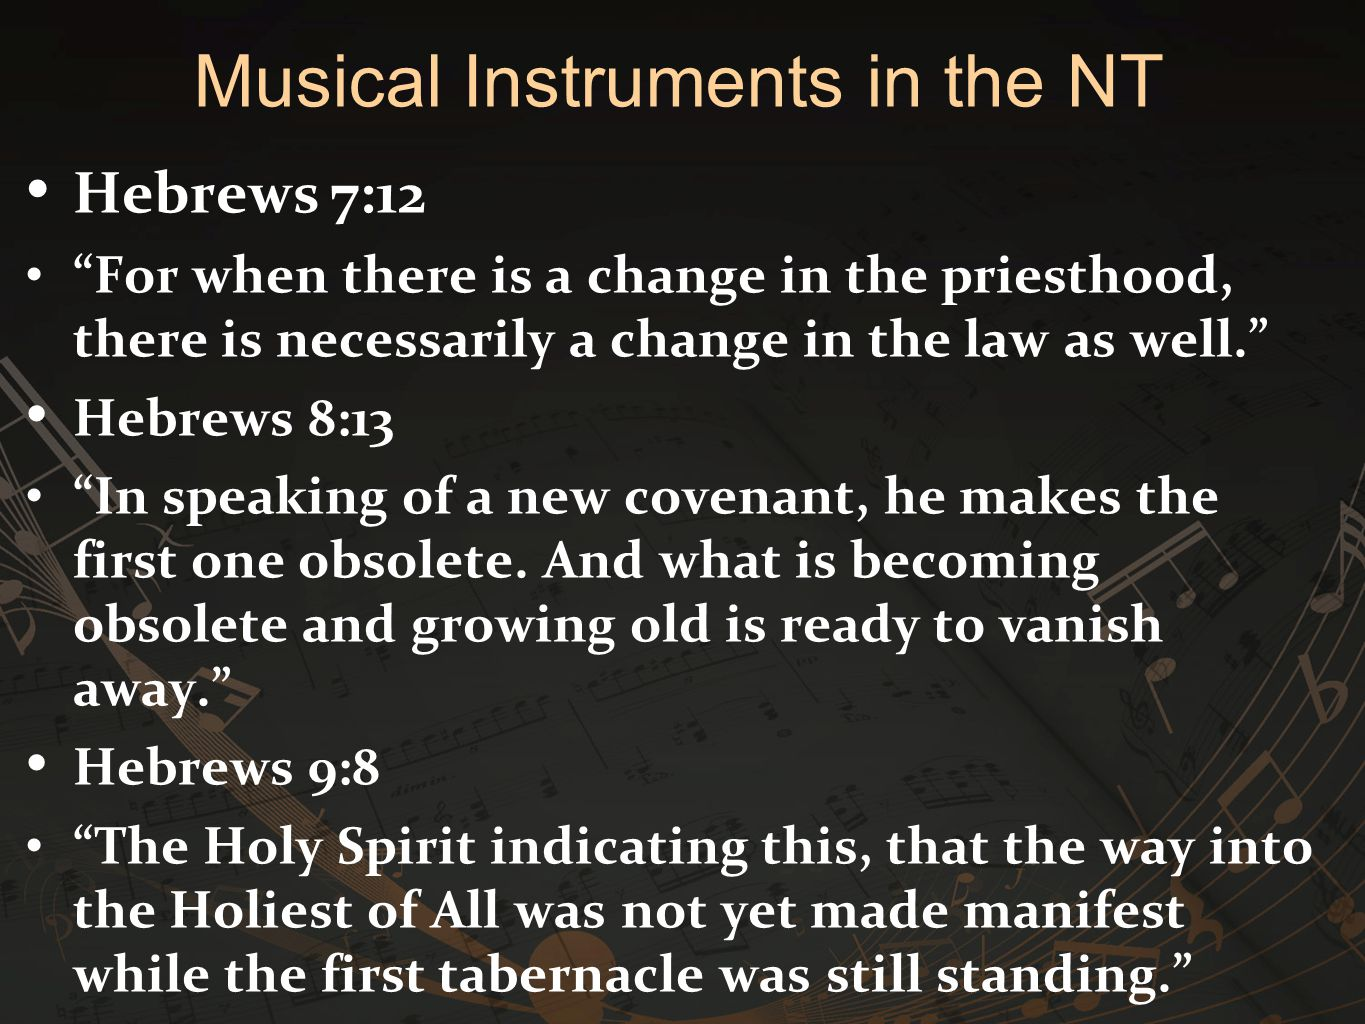 """Hebrews 7:12 """"For when there is a change in the priesthood, there is necessarily a change in the law as well."""" Hebrews 8:13 """"In speaking of a new cove"""